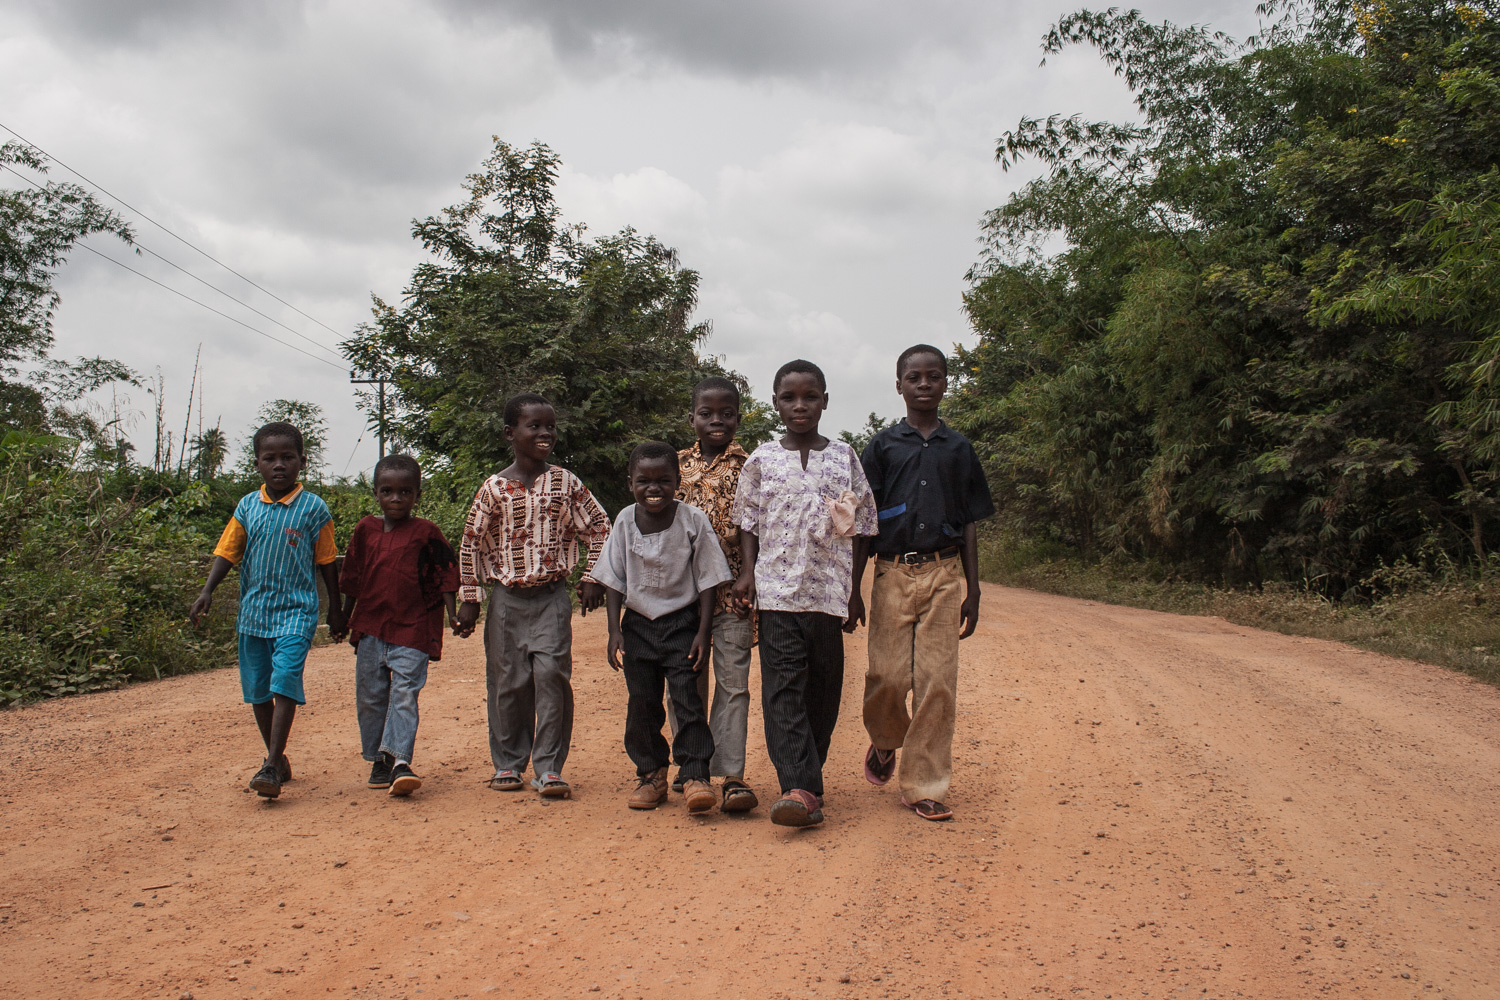 boys on their way to a local festival somewhere in the Ghanaian interior